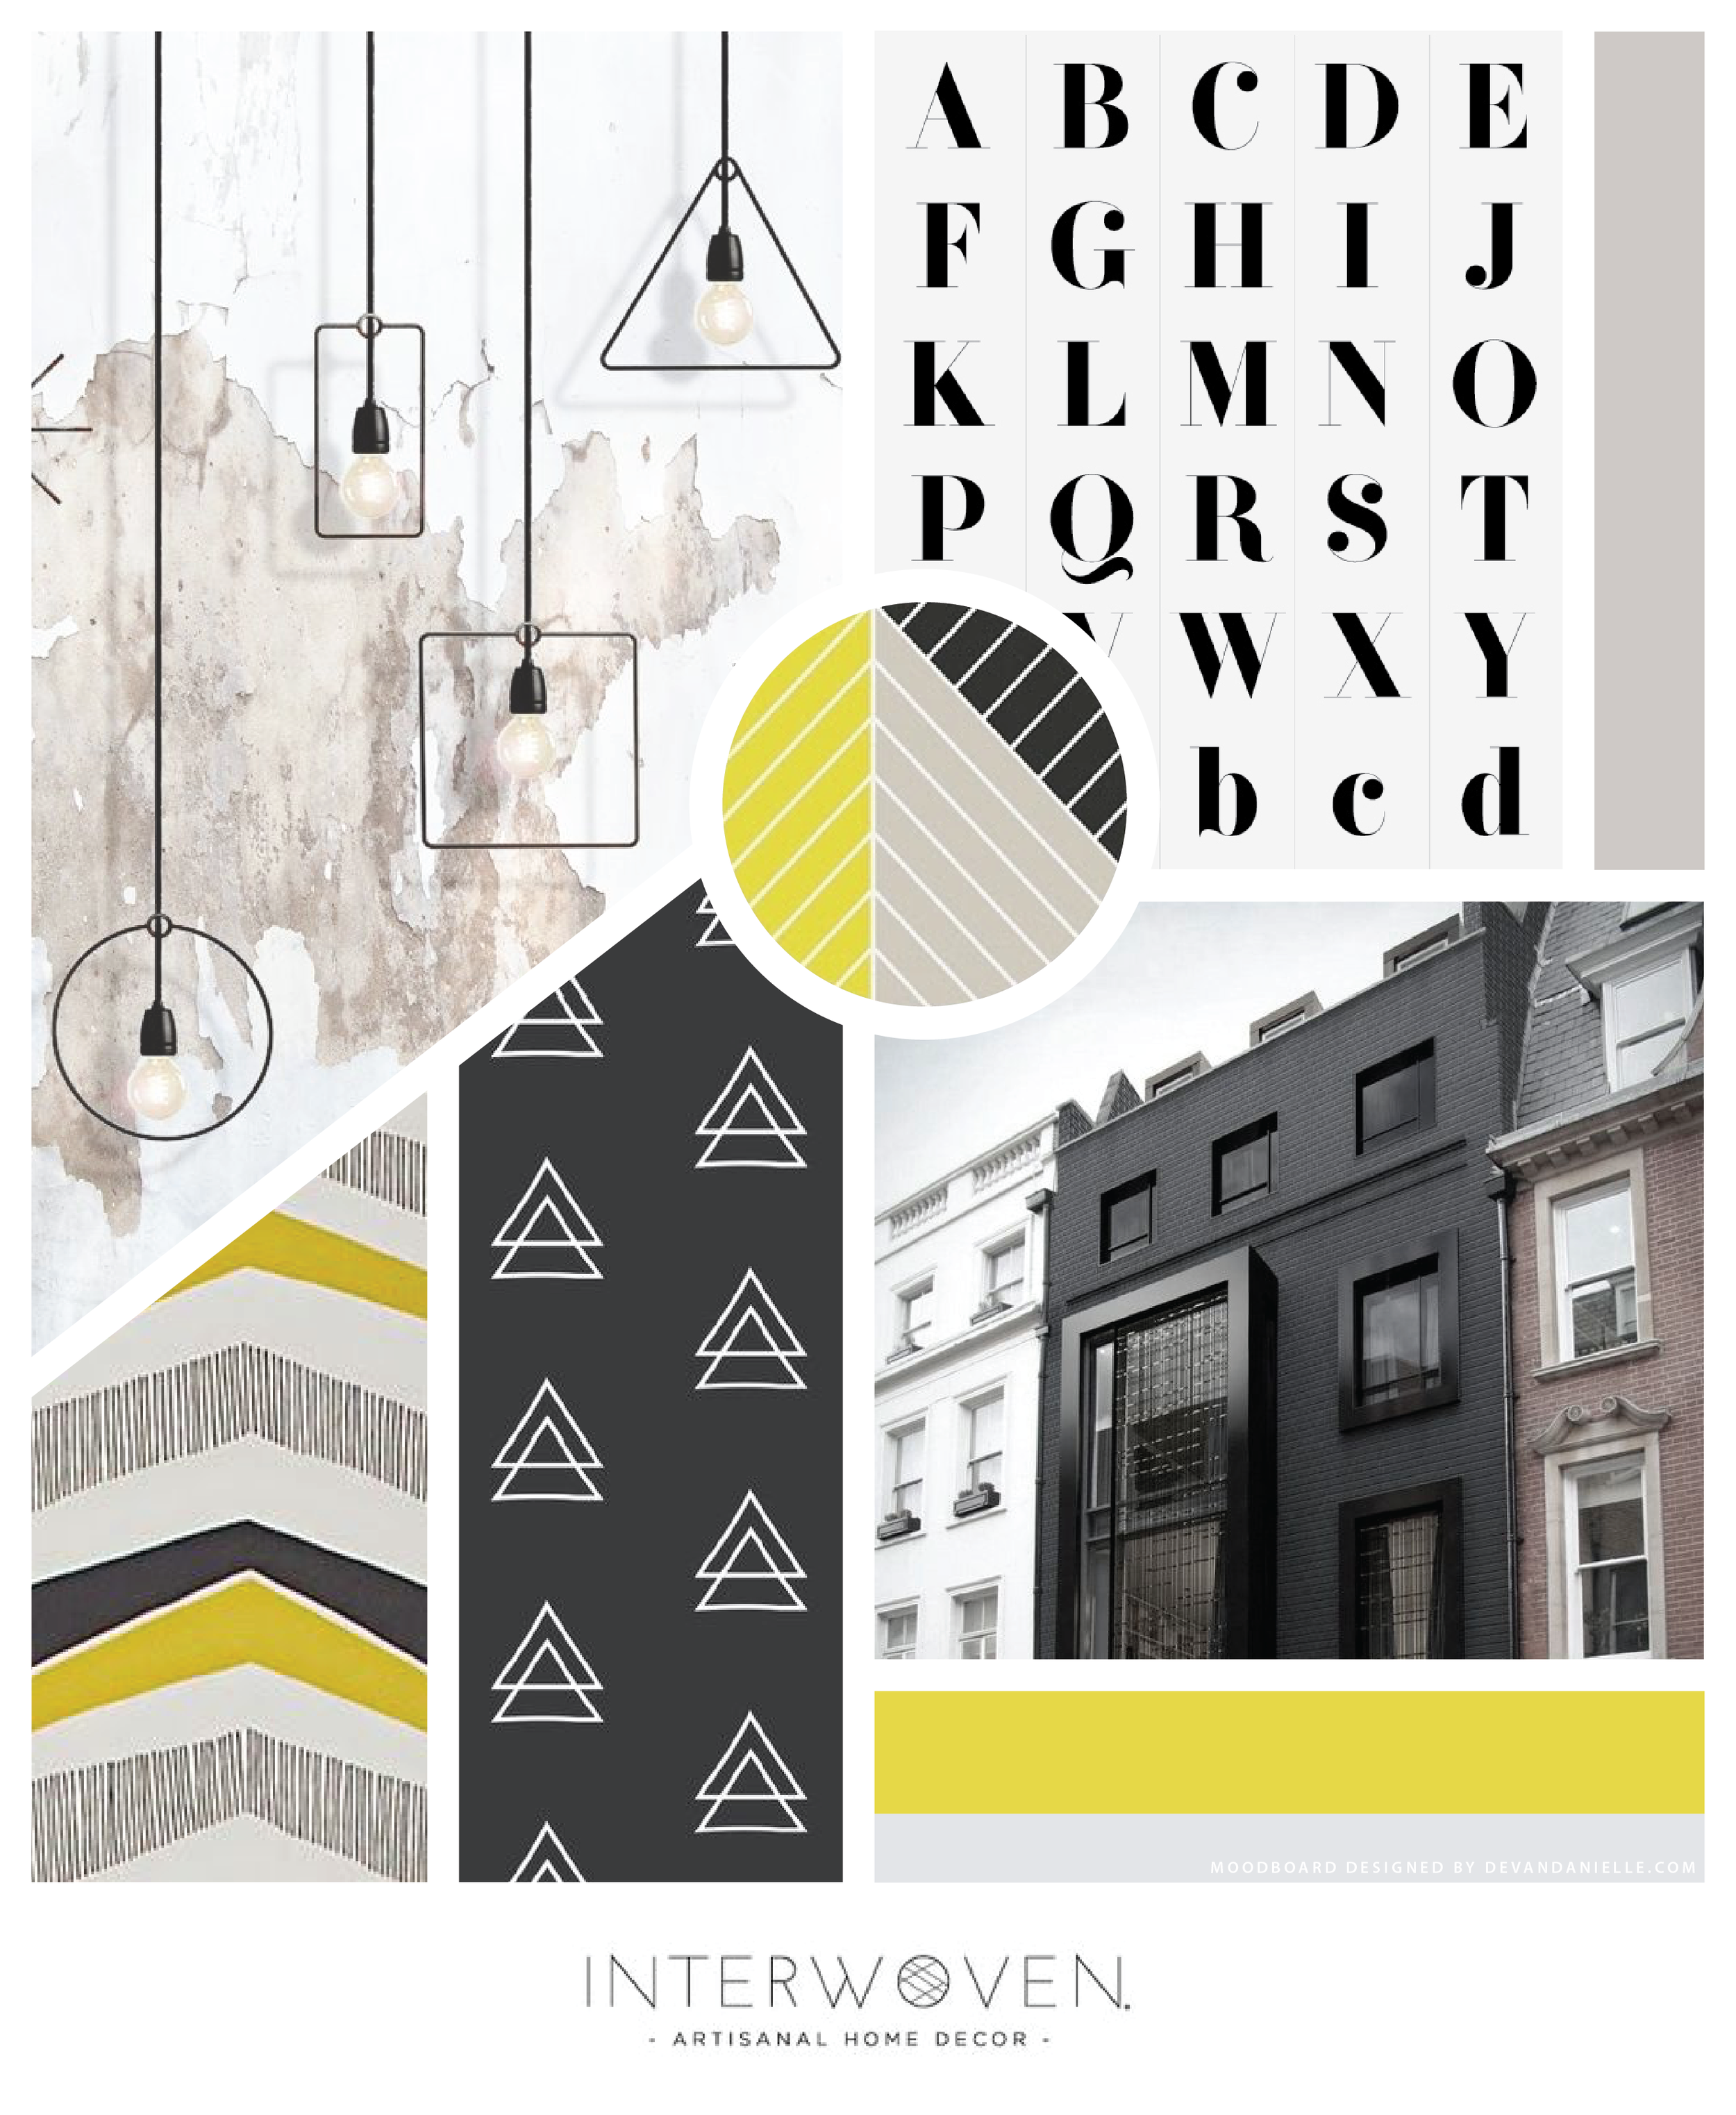 Moodboard created by yours truly for Lauren's rebrand.